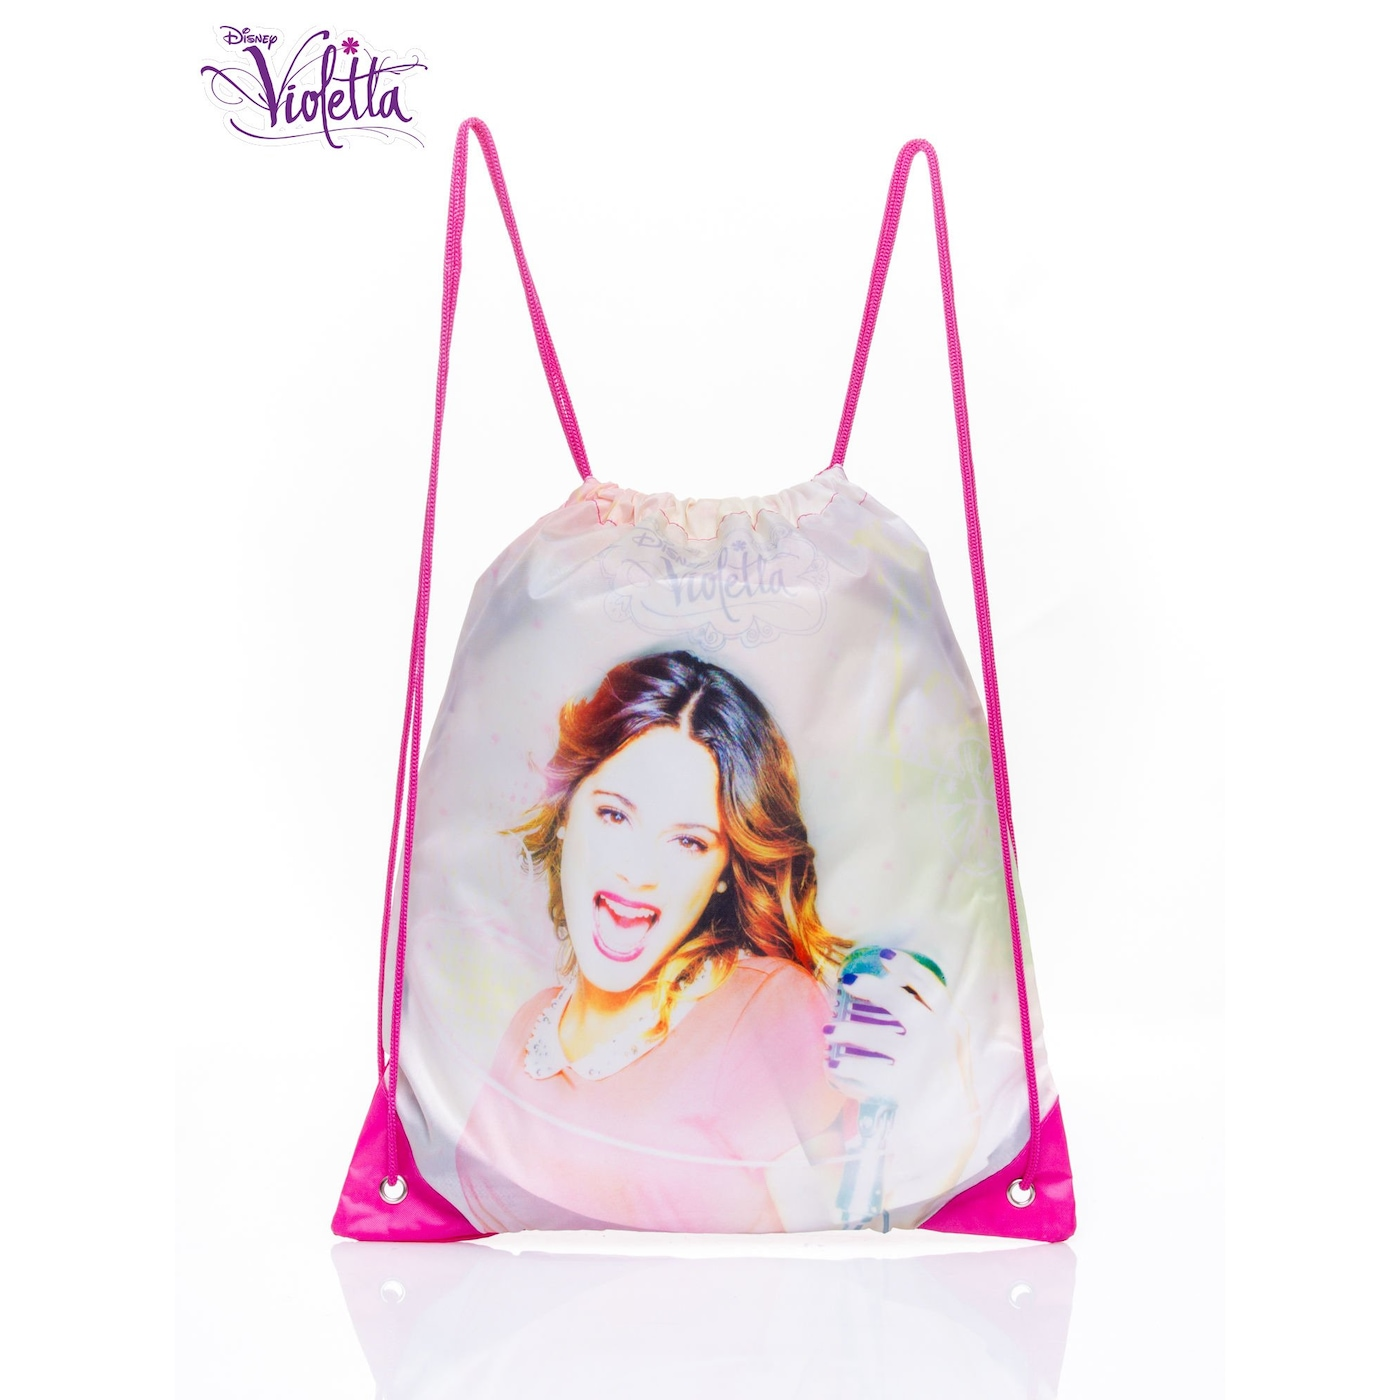 A white backpack with a Violetta bag